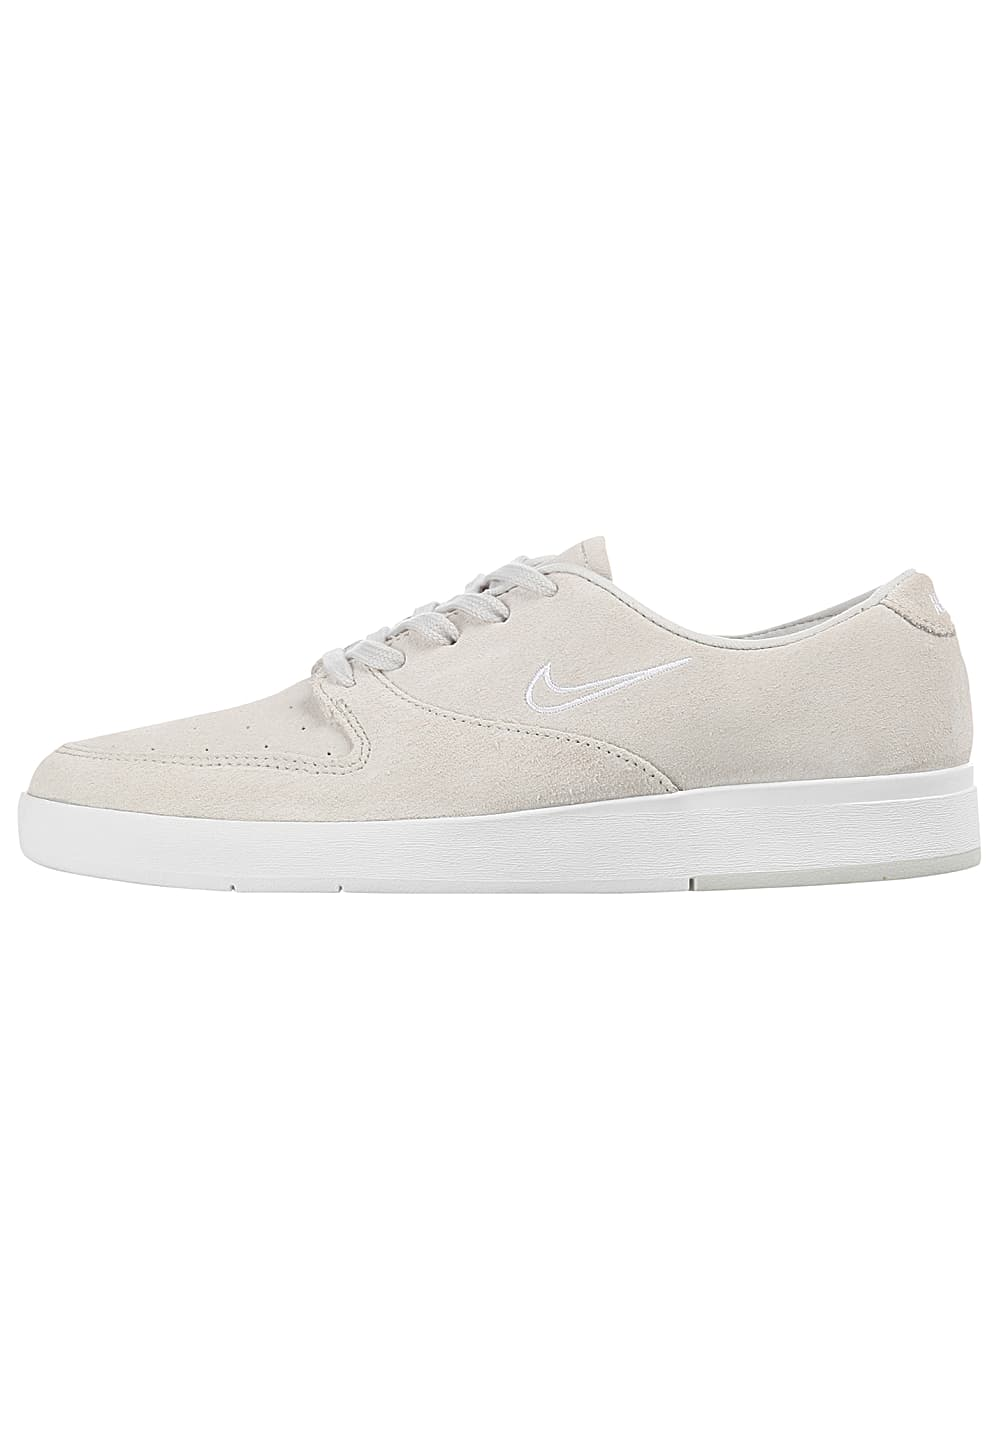 4004dd25d05fe NIKE SB Zoom P-Rod X - Sneakers for Men - Beige - Planet Sports